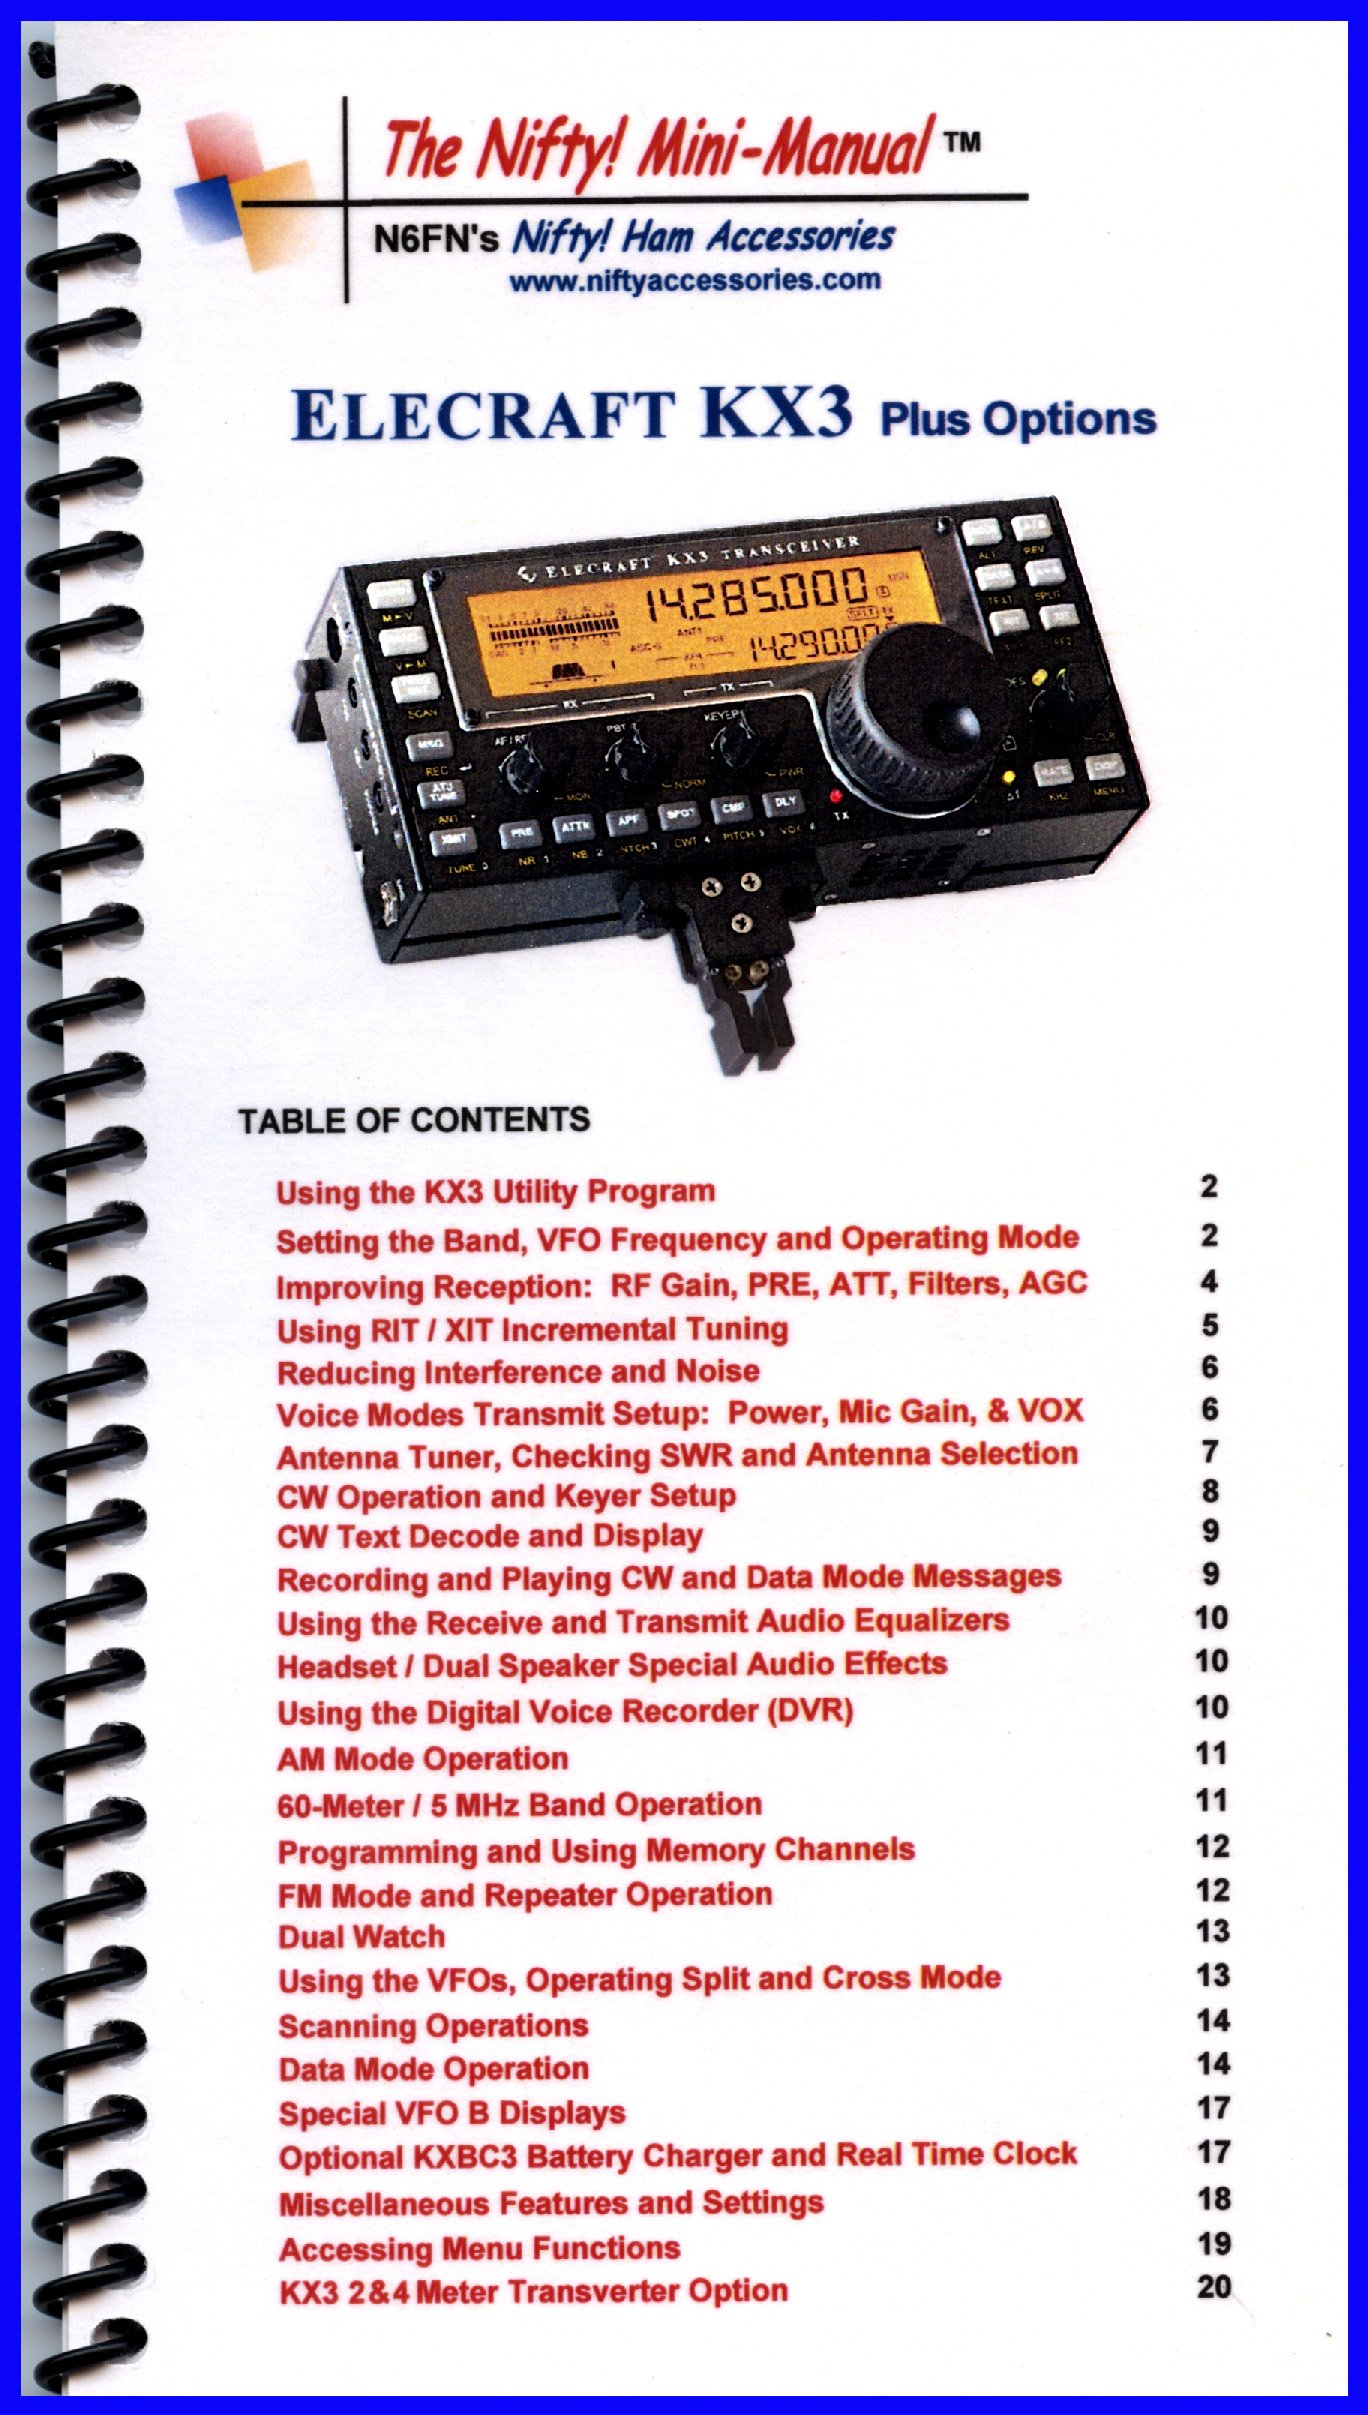 Elecraft KX3 Mini-Manual by Nifty Accessories